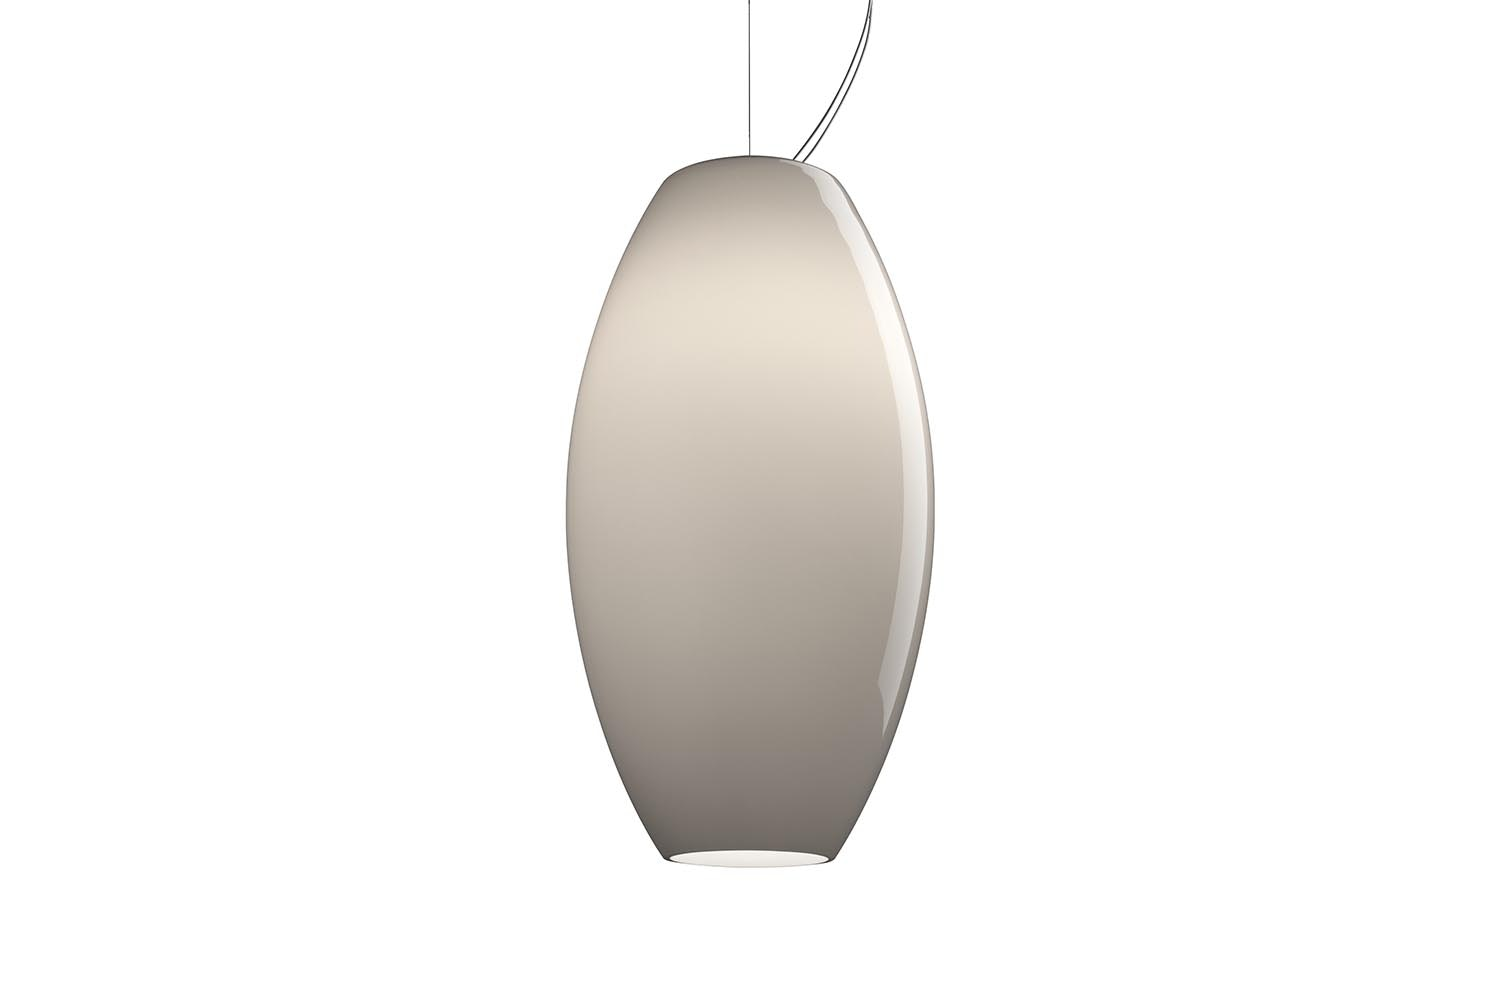 New Buds Suspension Lamp by Rodolfo Dordoni for Foscarini